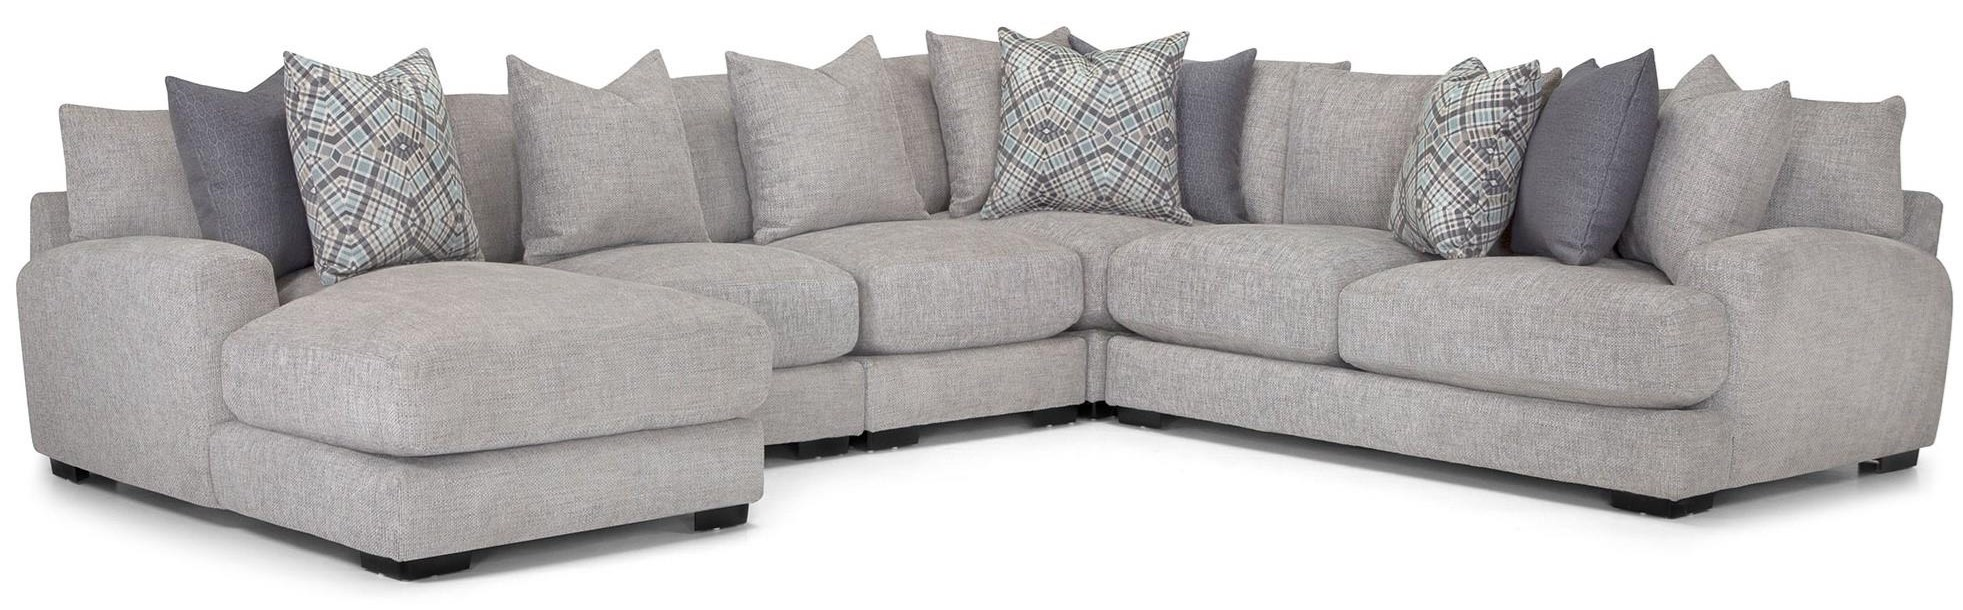 5 Pc sectional -Grey